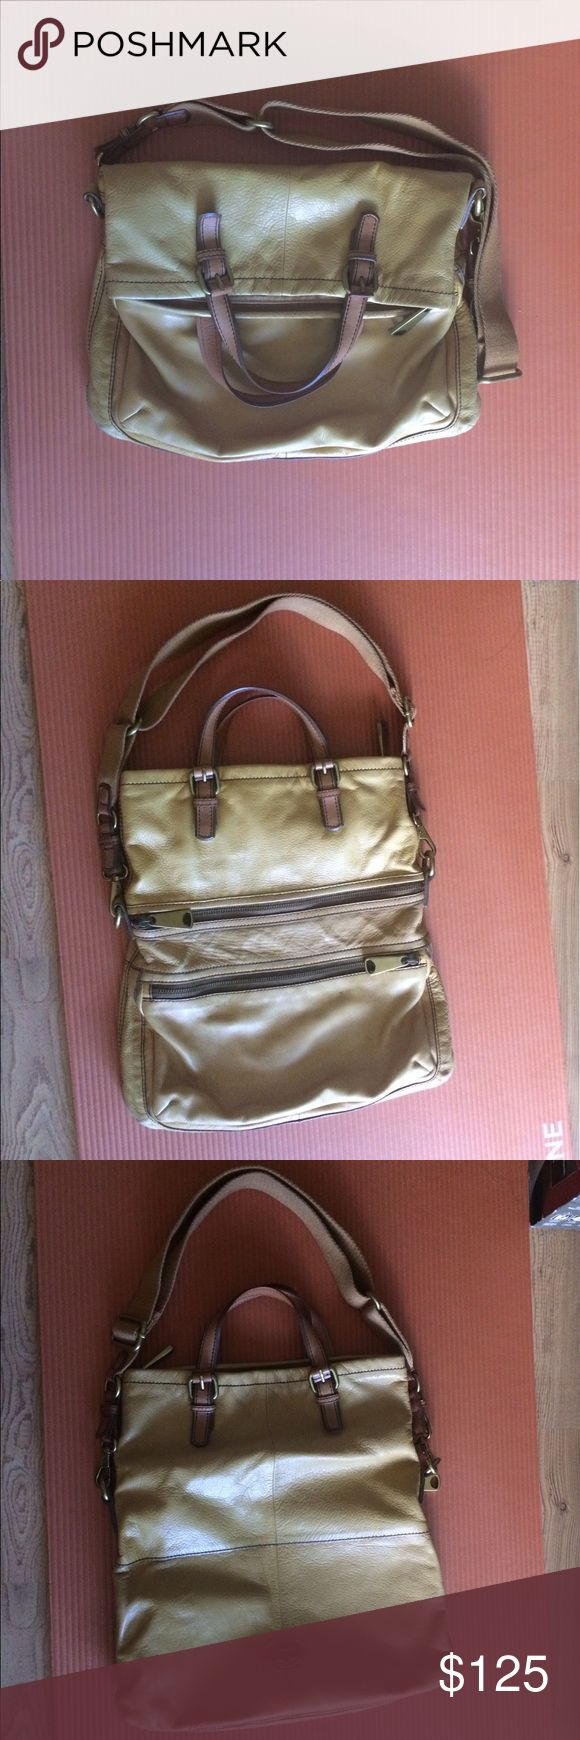 """Fossil Explorer Foldover Crossbody Bag Mustard colored leather crossbody bag with handles and removable strap. This bag snugly fits a 15"""" laptop (Mac) when unfolded and has several pockets inside to help you organize your items. Fossil Bags Crossbody Bags"""